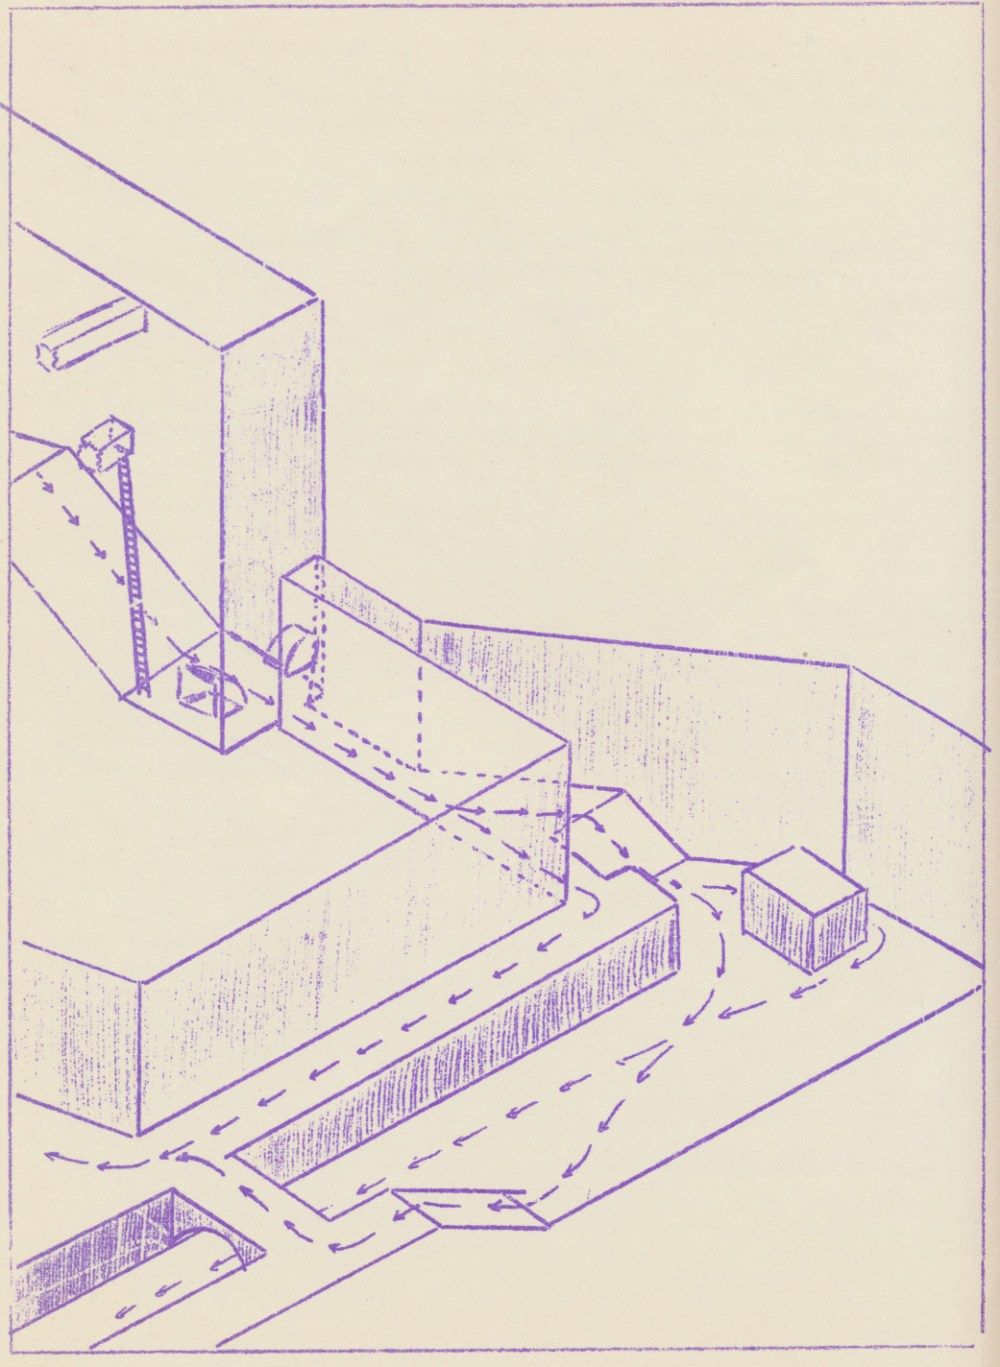 medium resolution of turning first to isometric techniques these may be divided into two basic types which the writer has called the isometric section and the isometric diagram